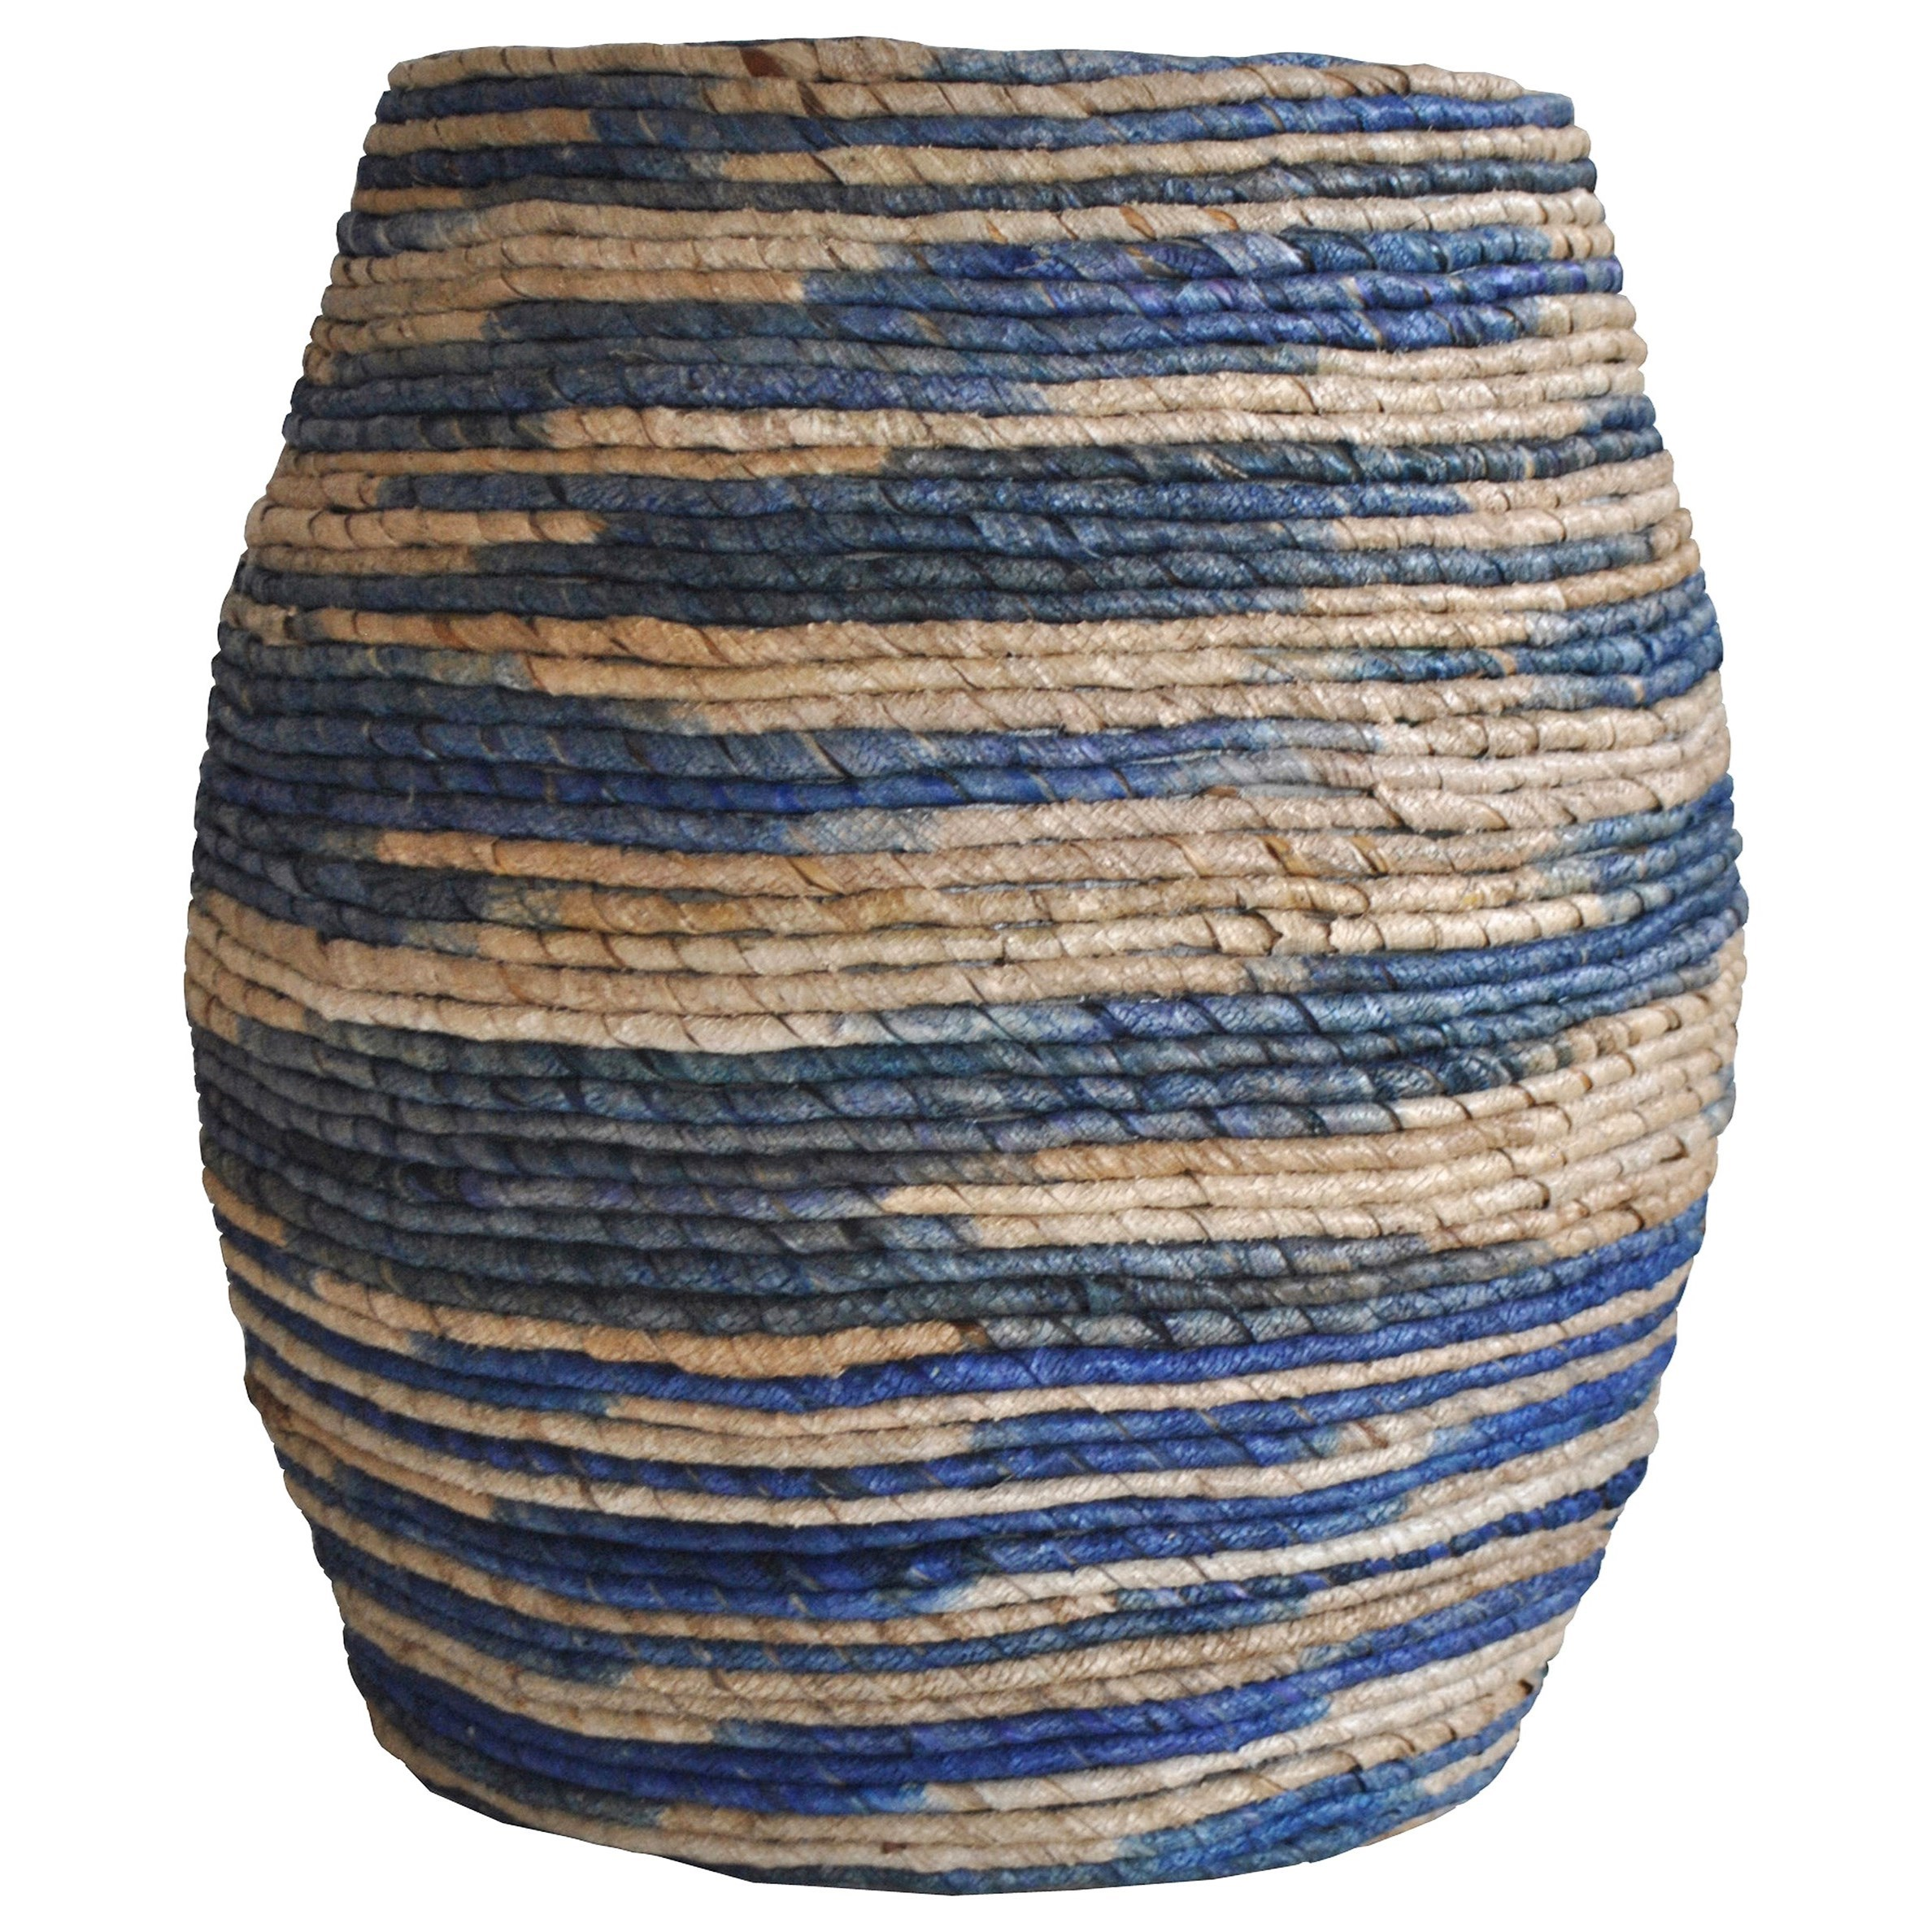 Moe's Home Collection Abaca  Drum Stool Blue  - Item Number: IZ-1006-26